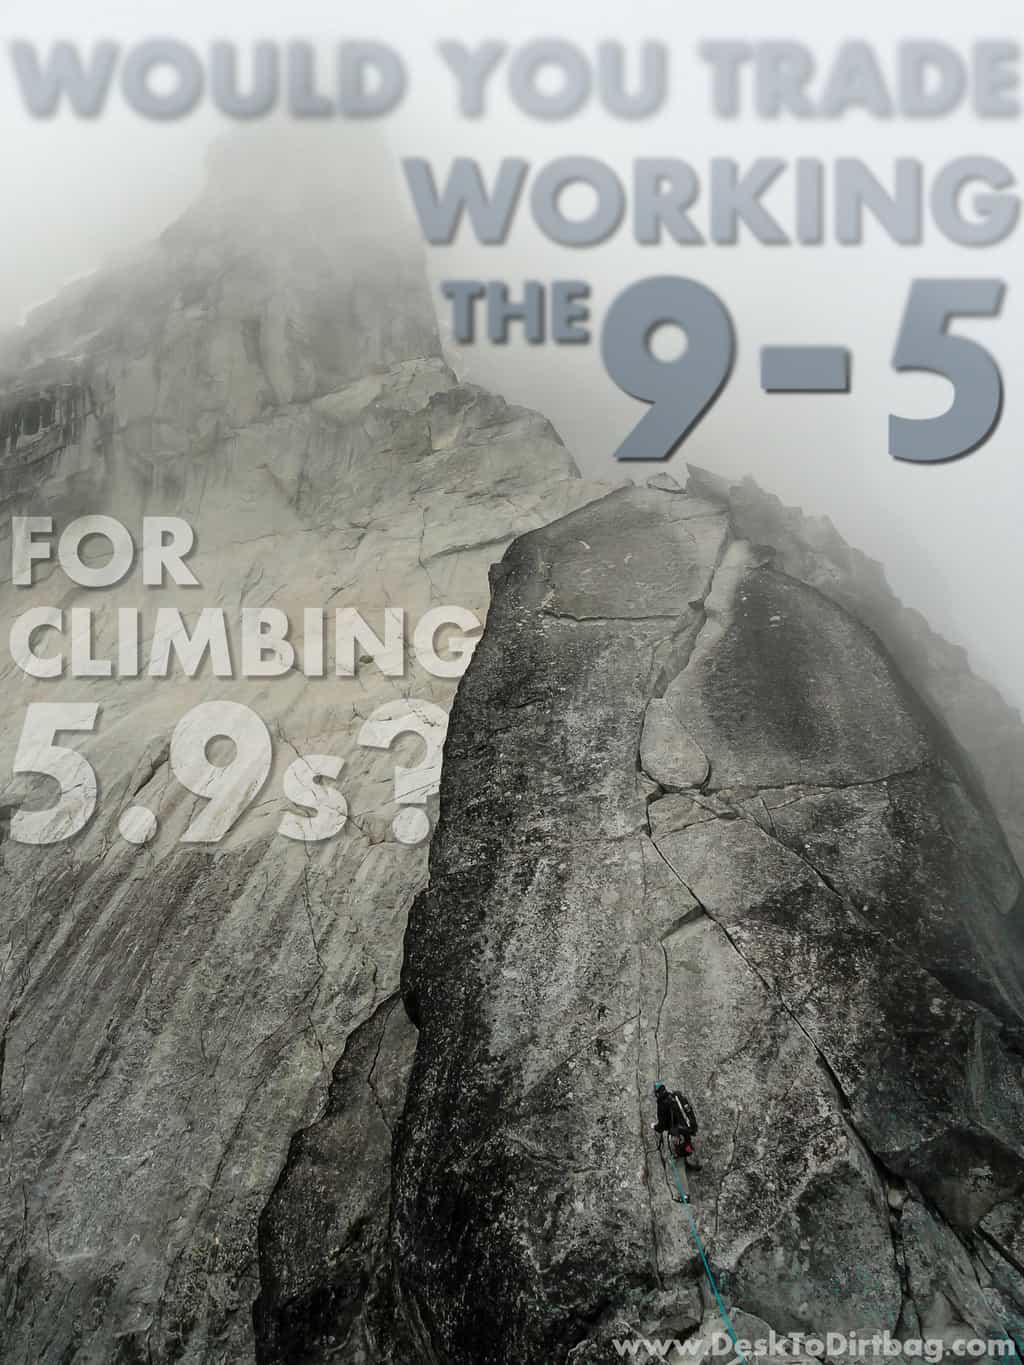 Trade the 9-5 for climbing 5.9s